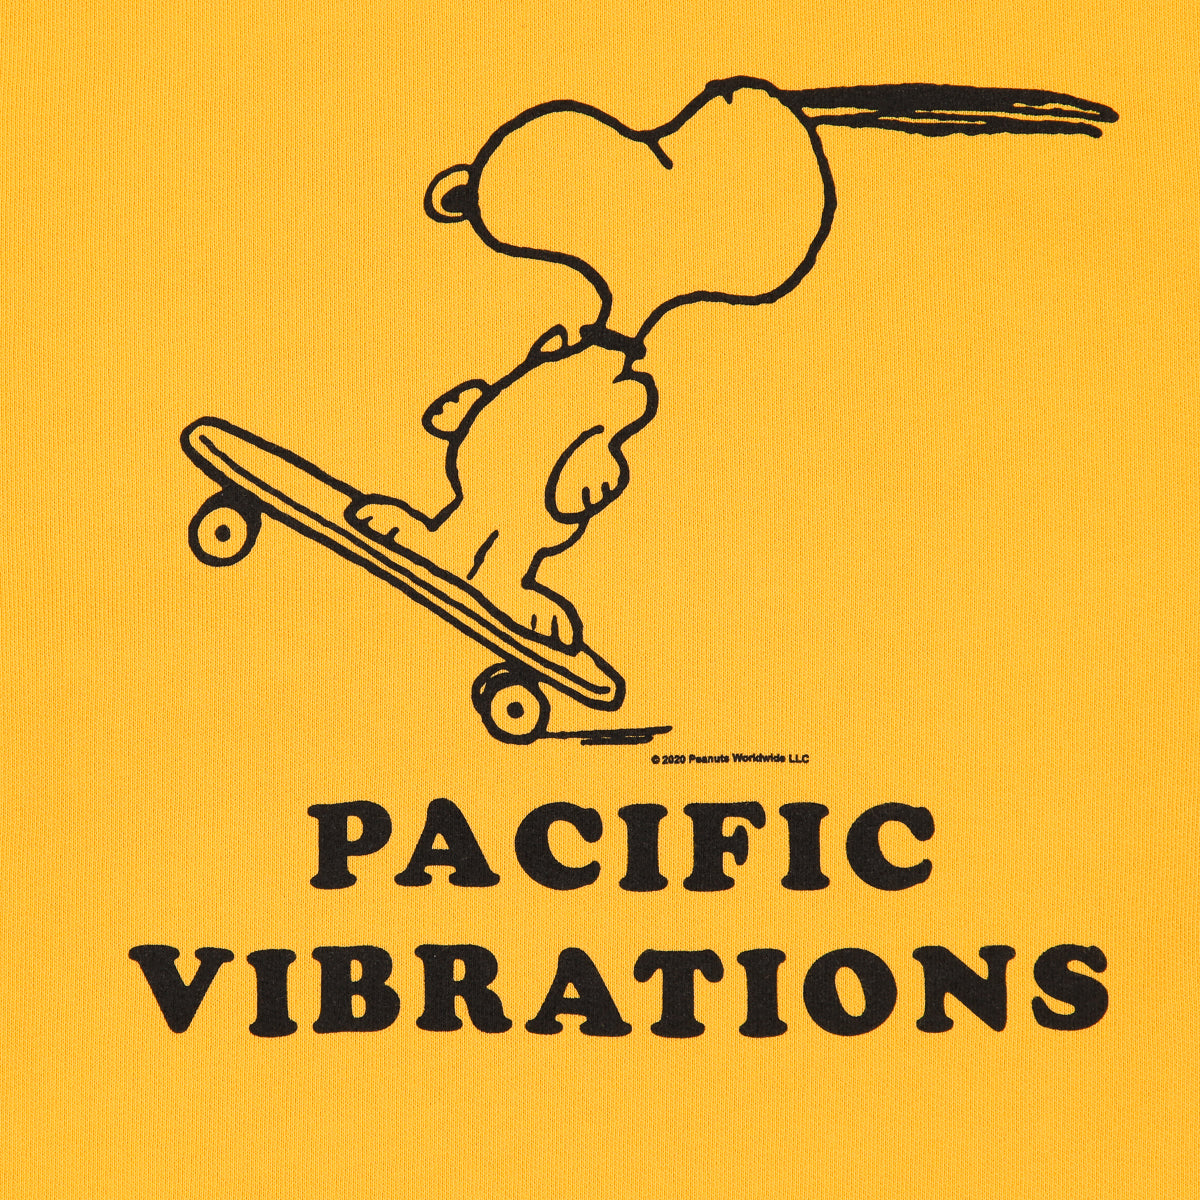 PACIFIC VIBRATIONS SWEATSHIRT